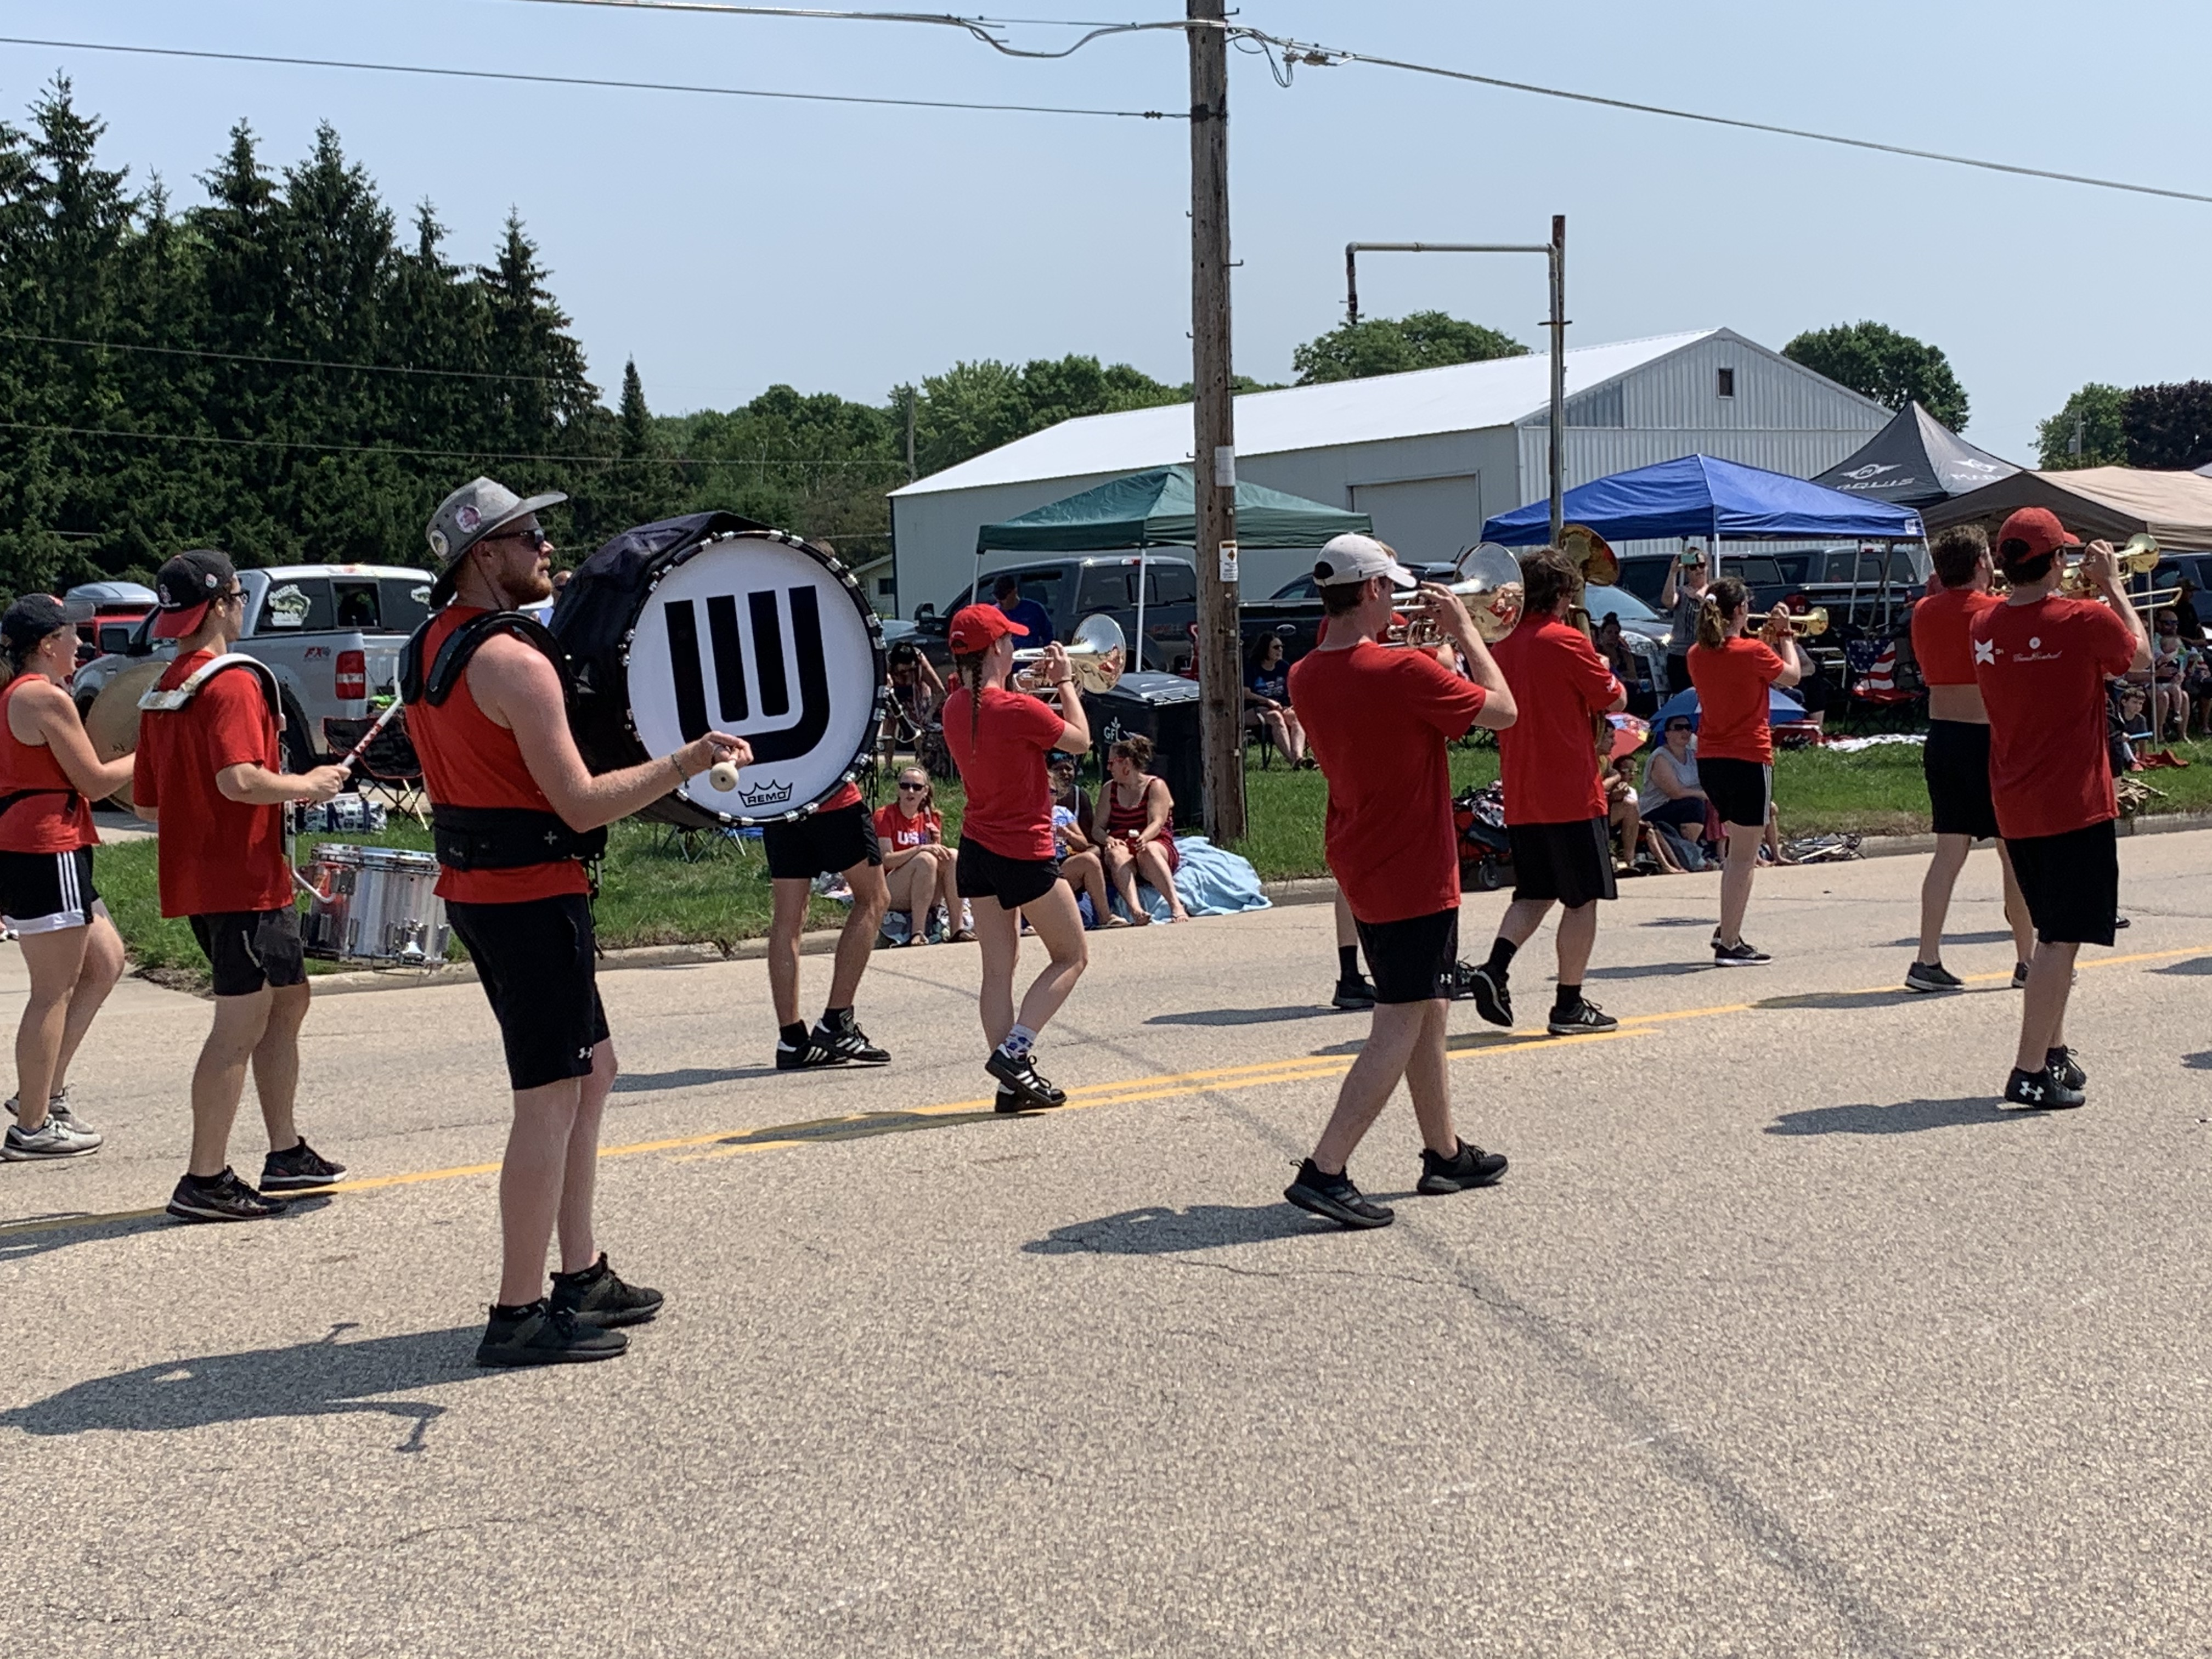 Members of the University of Wisconsin marching band provide music, while taking part in the Fourth of July parade in Bonduel on July 4.Luke Reimer | NEW Media